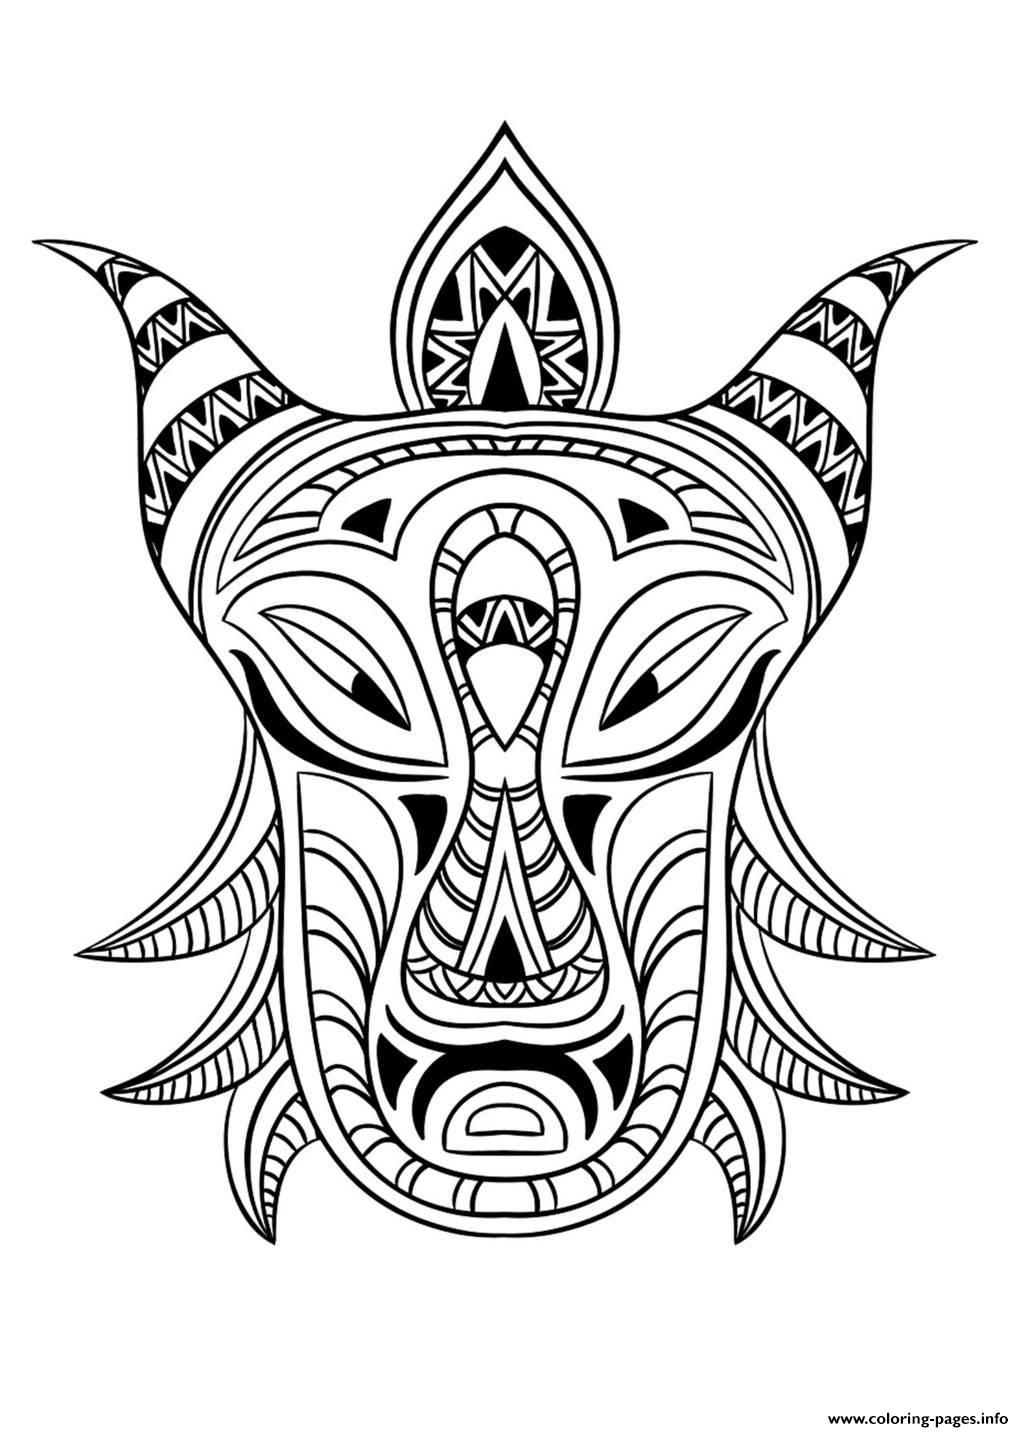 african design coloring pages - photo#19